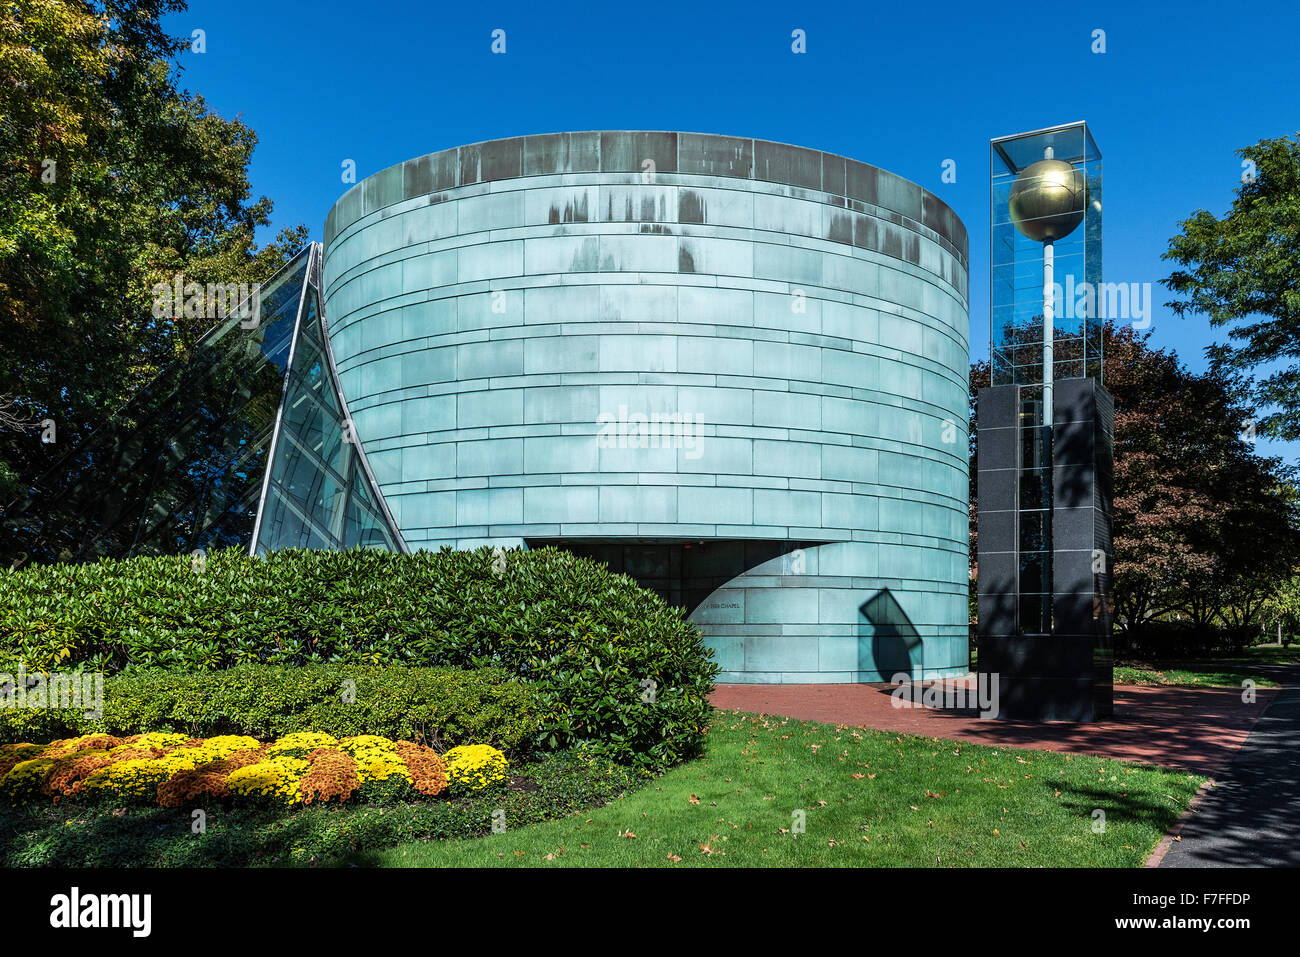 The MBA Class of 1959 Chapel, Harvard University, Massachusetts, USA - Stock Image